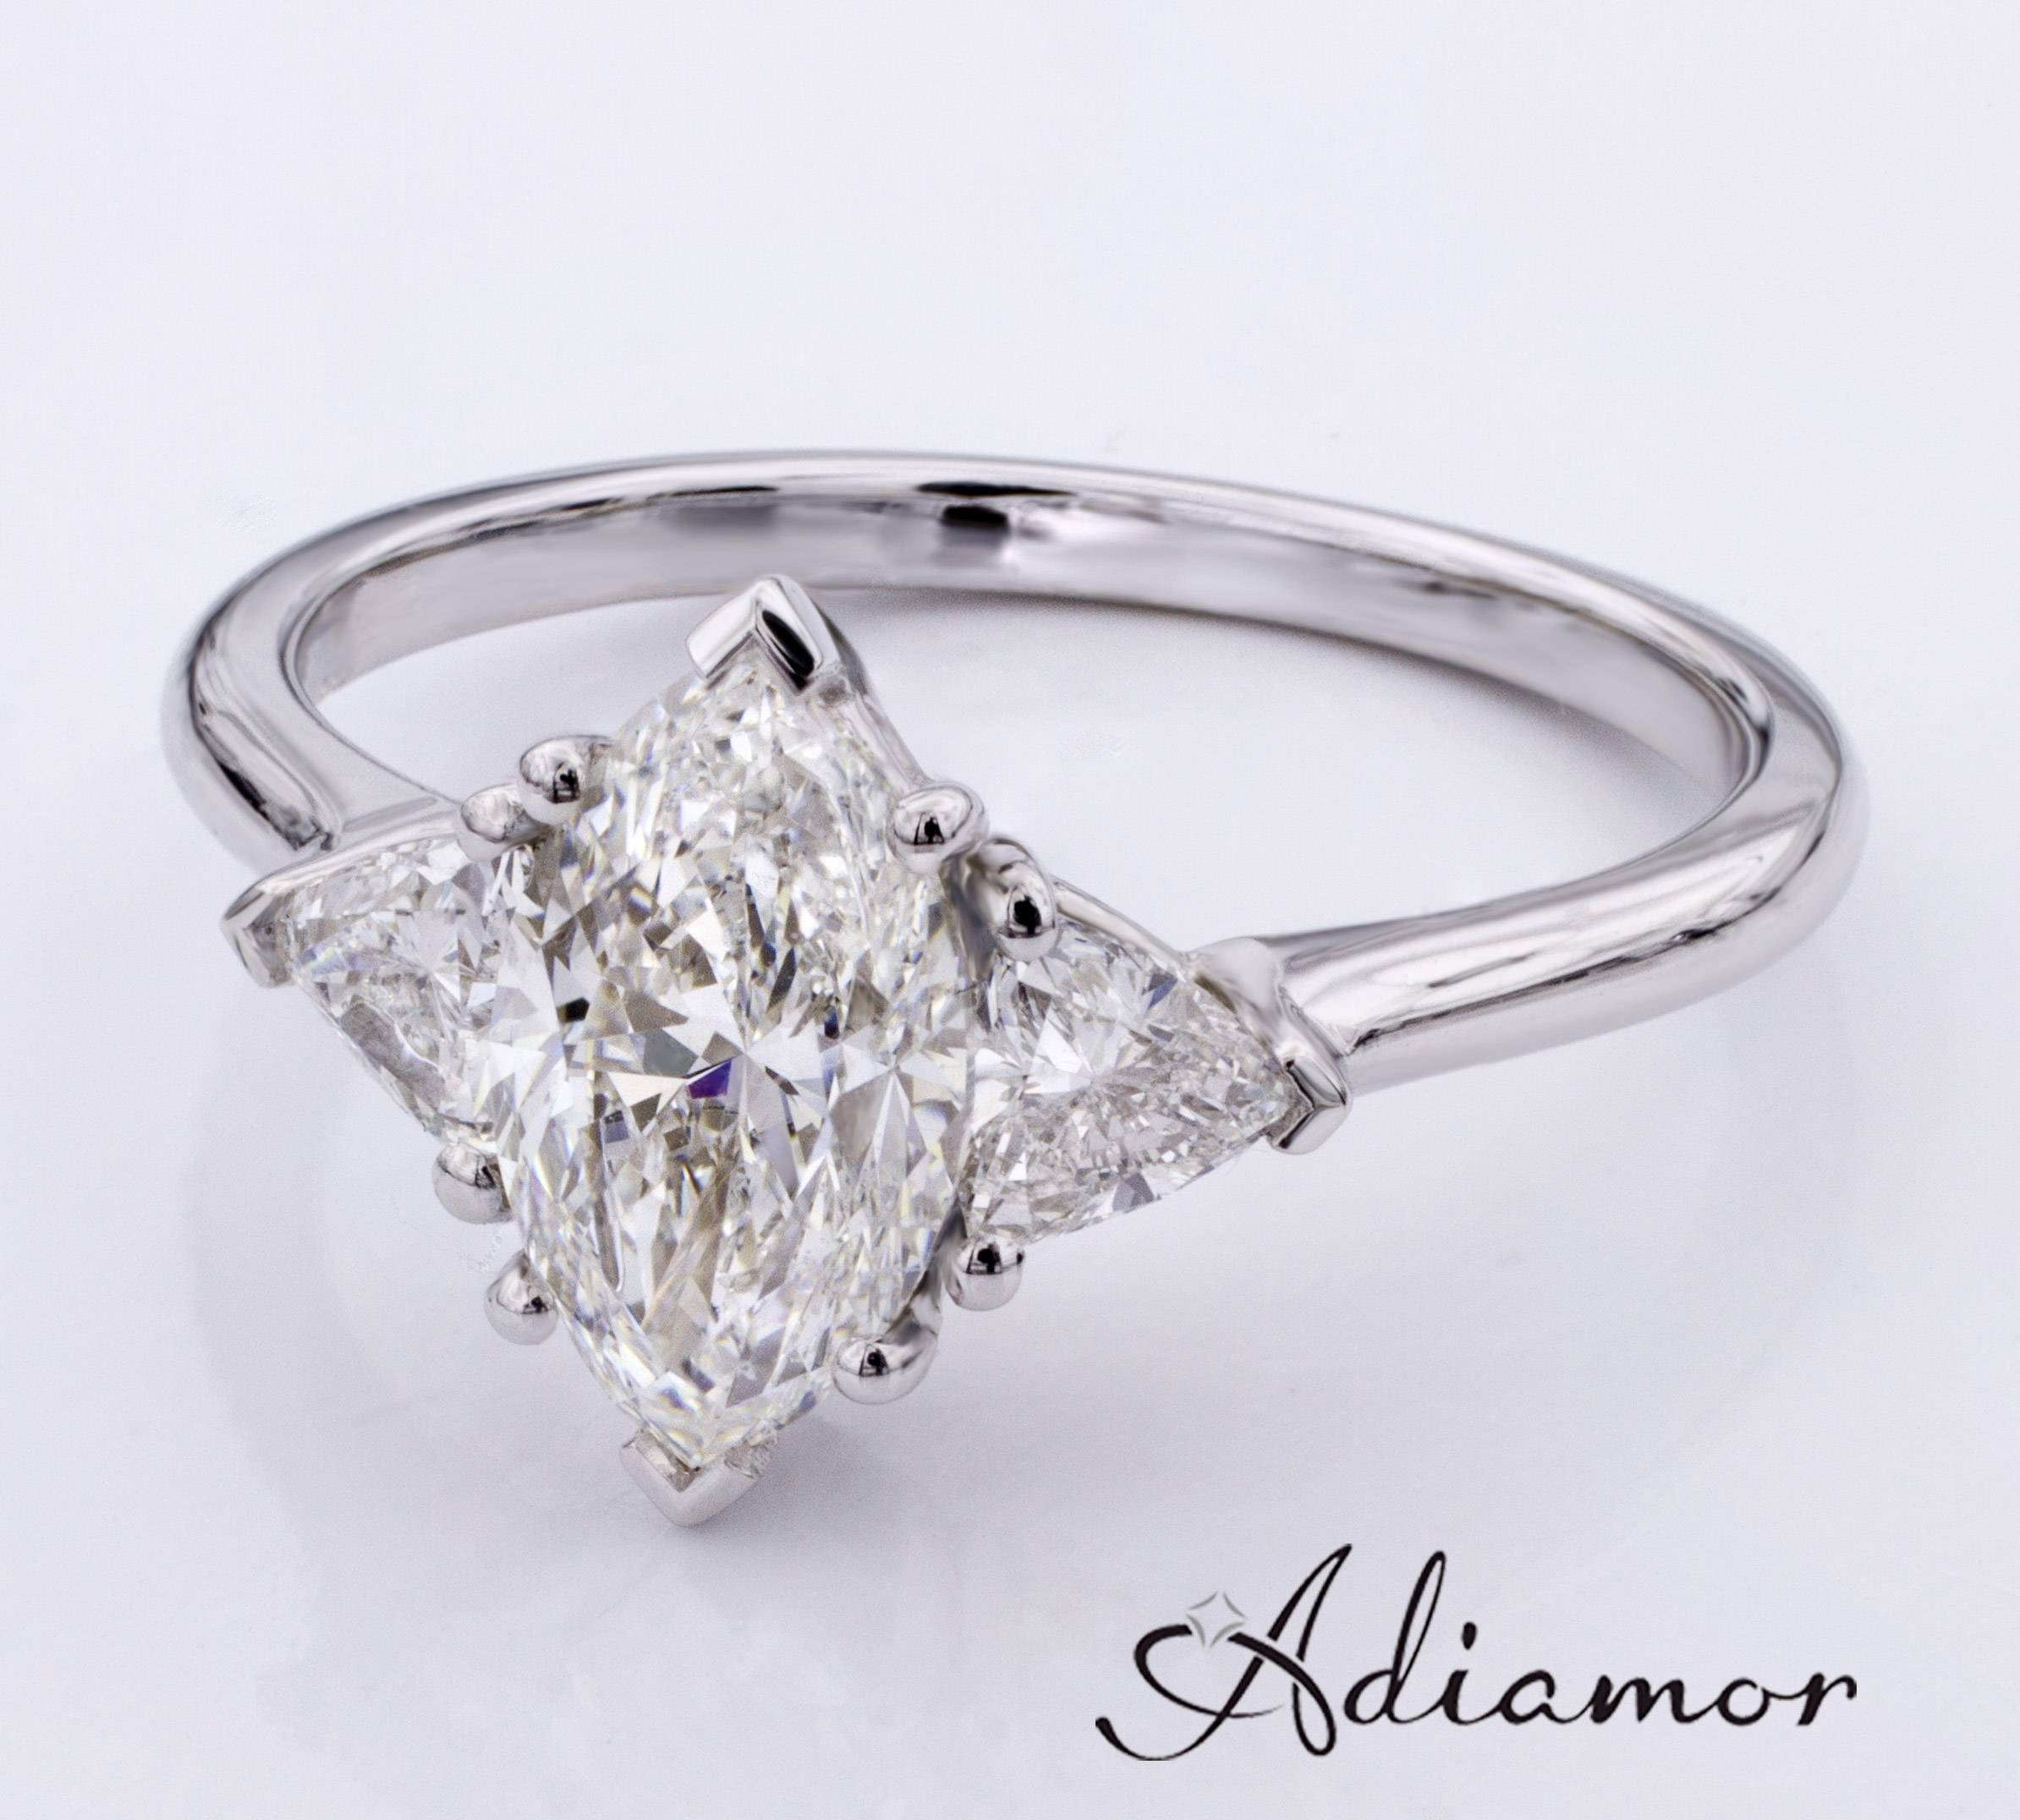 Modern Versions Of The Three Stone Ring | Adiamor Pertaining To Three Stone Engagement Rings With Side Stones (Gallery 8 of 15)